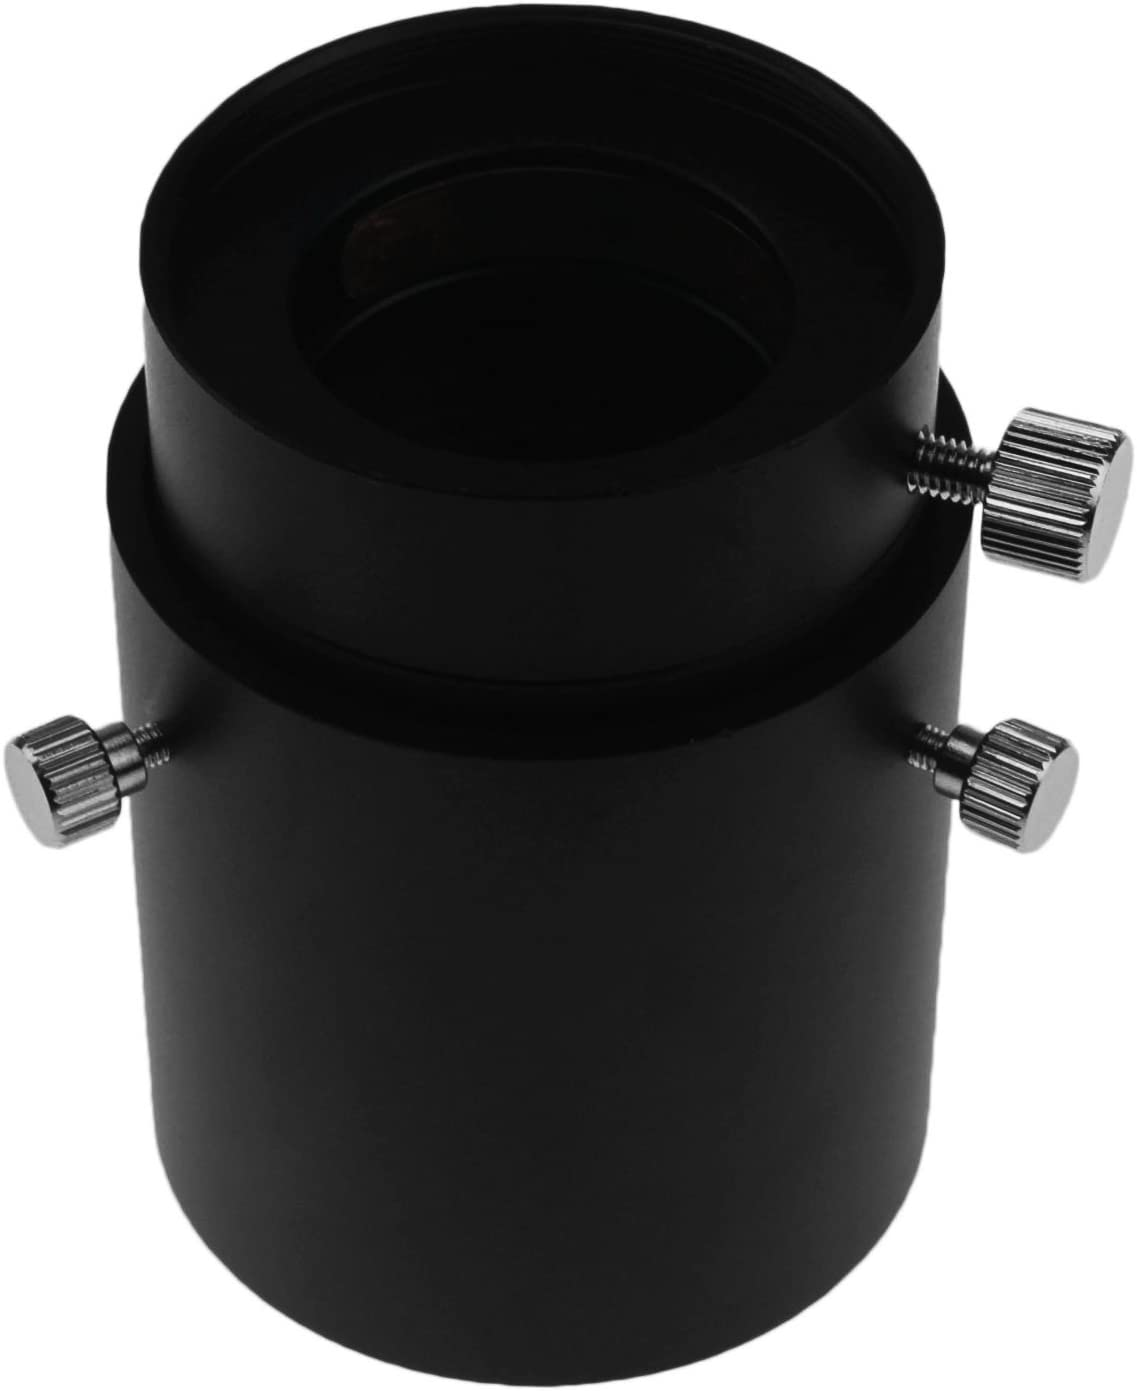 Alstar 2 Variable Universal Camera Adapter Compatible for Both Reflector and Refractor telescopes with 1.25 Eyepiece Holders